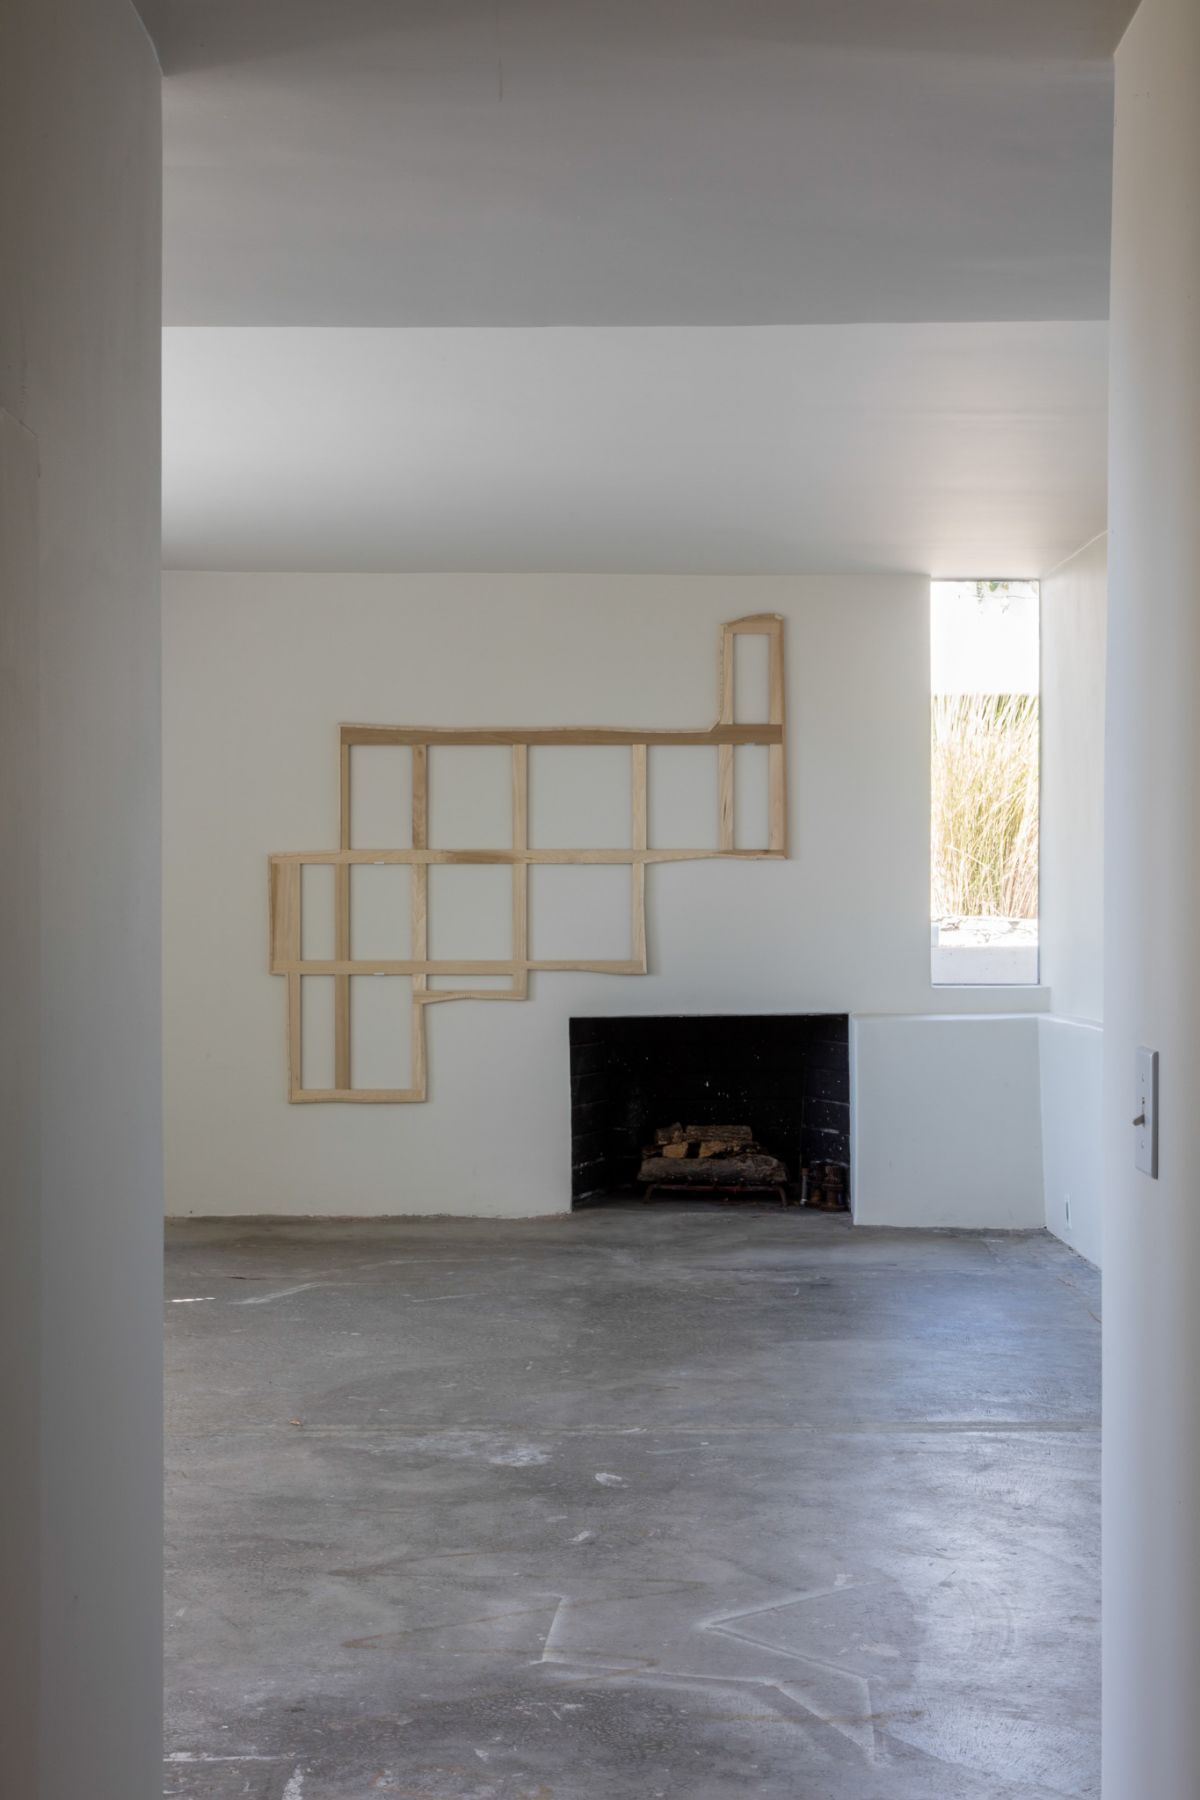 Jacob Kassay, Untitled, 2012-2015, Installation view: Fitzpatrick-Leland House September, 2015